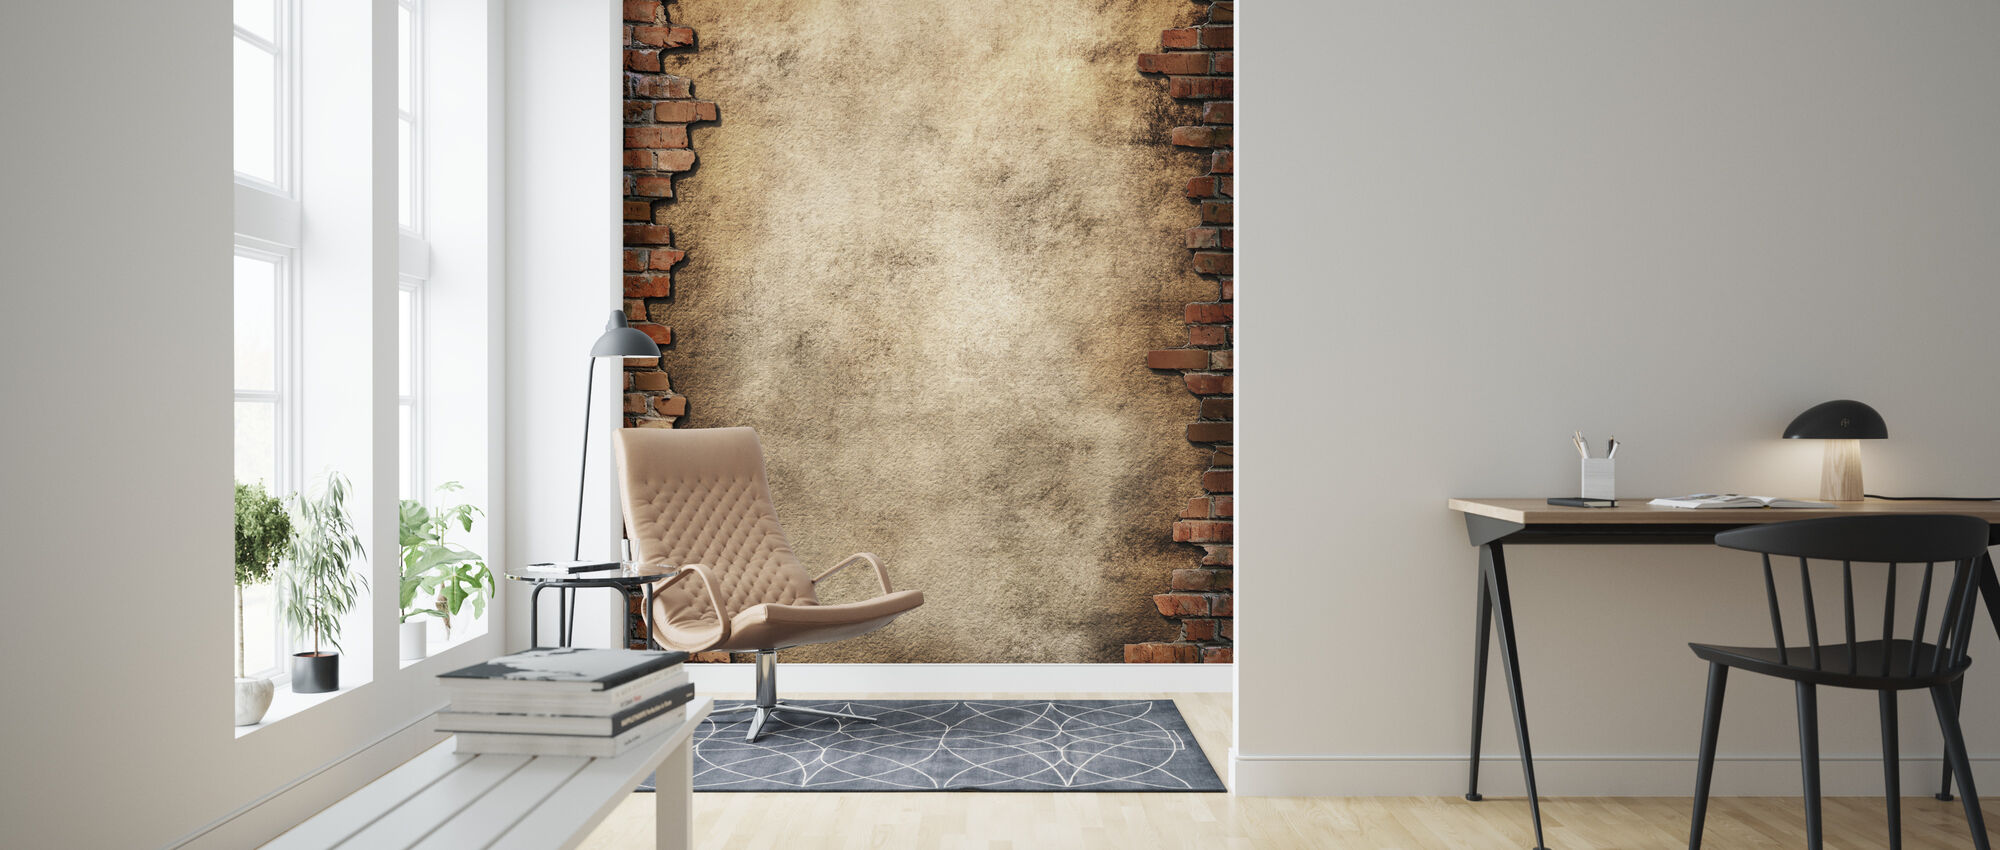 Brick Wall Frame - Wallpaper - Living Room